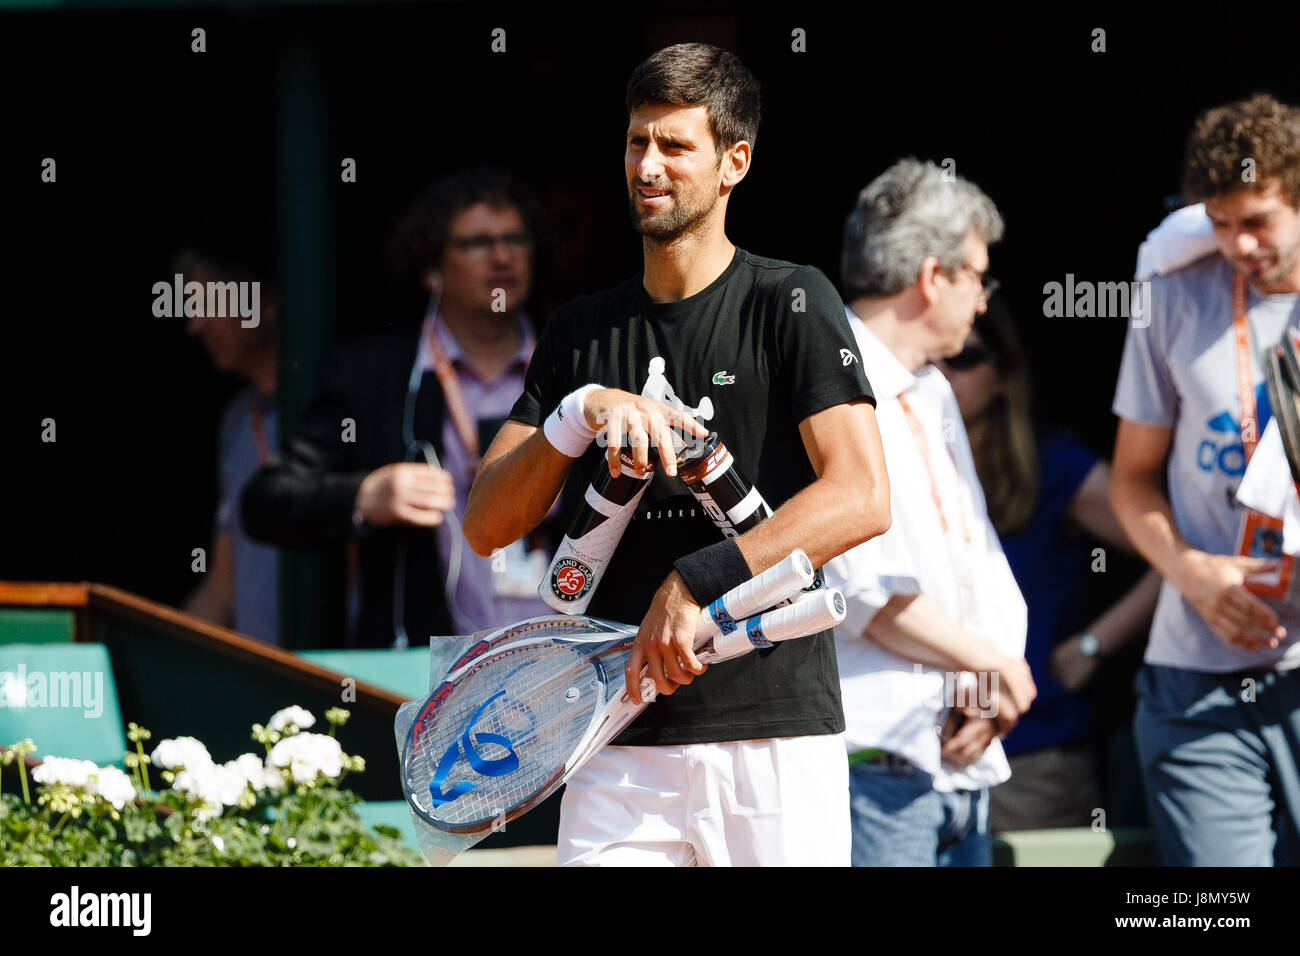 Paris, France, 29th May 2017, Tennis French Open: Novak Djokovic during a practice session at day 2 at the 2017 - Stock Image